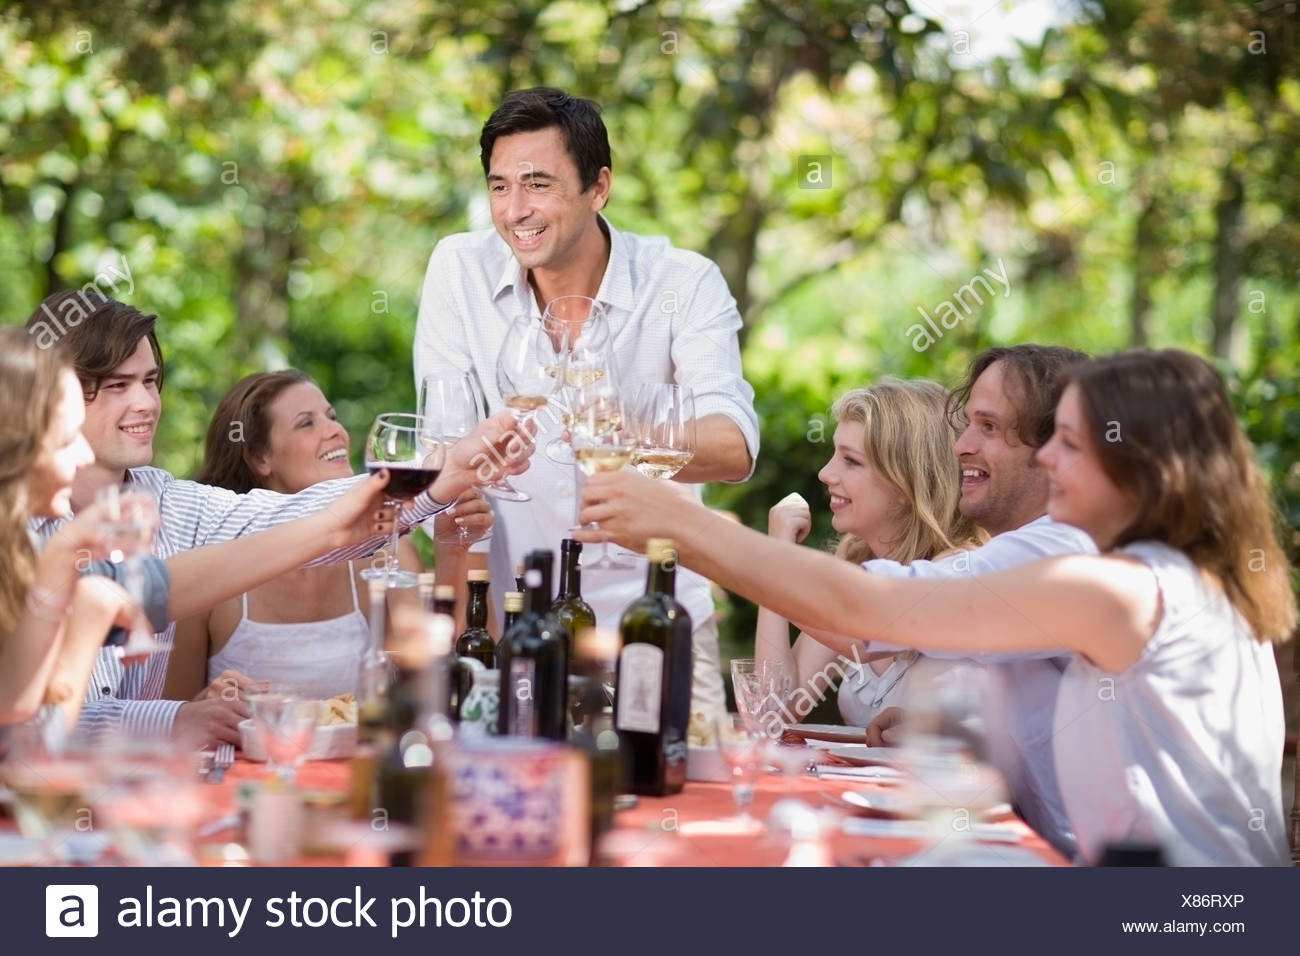 Family at the table - Stock Image